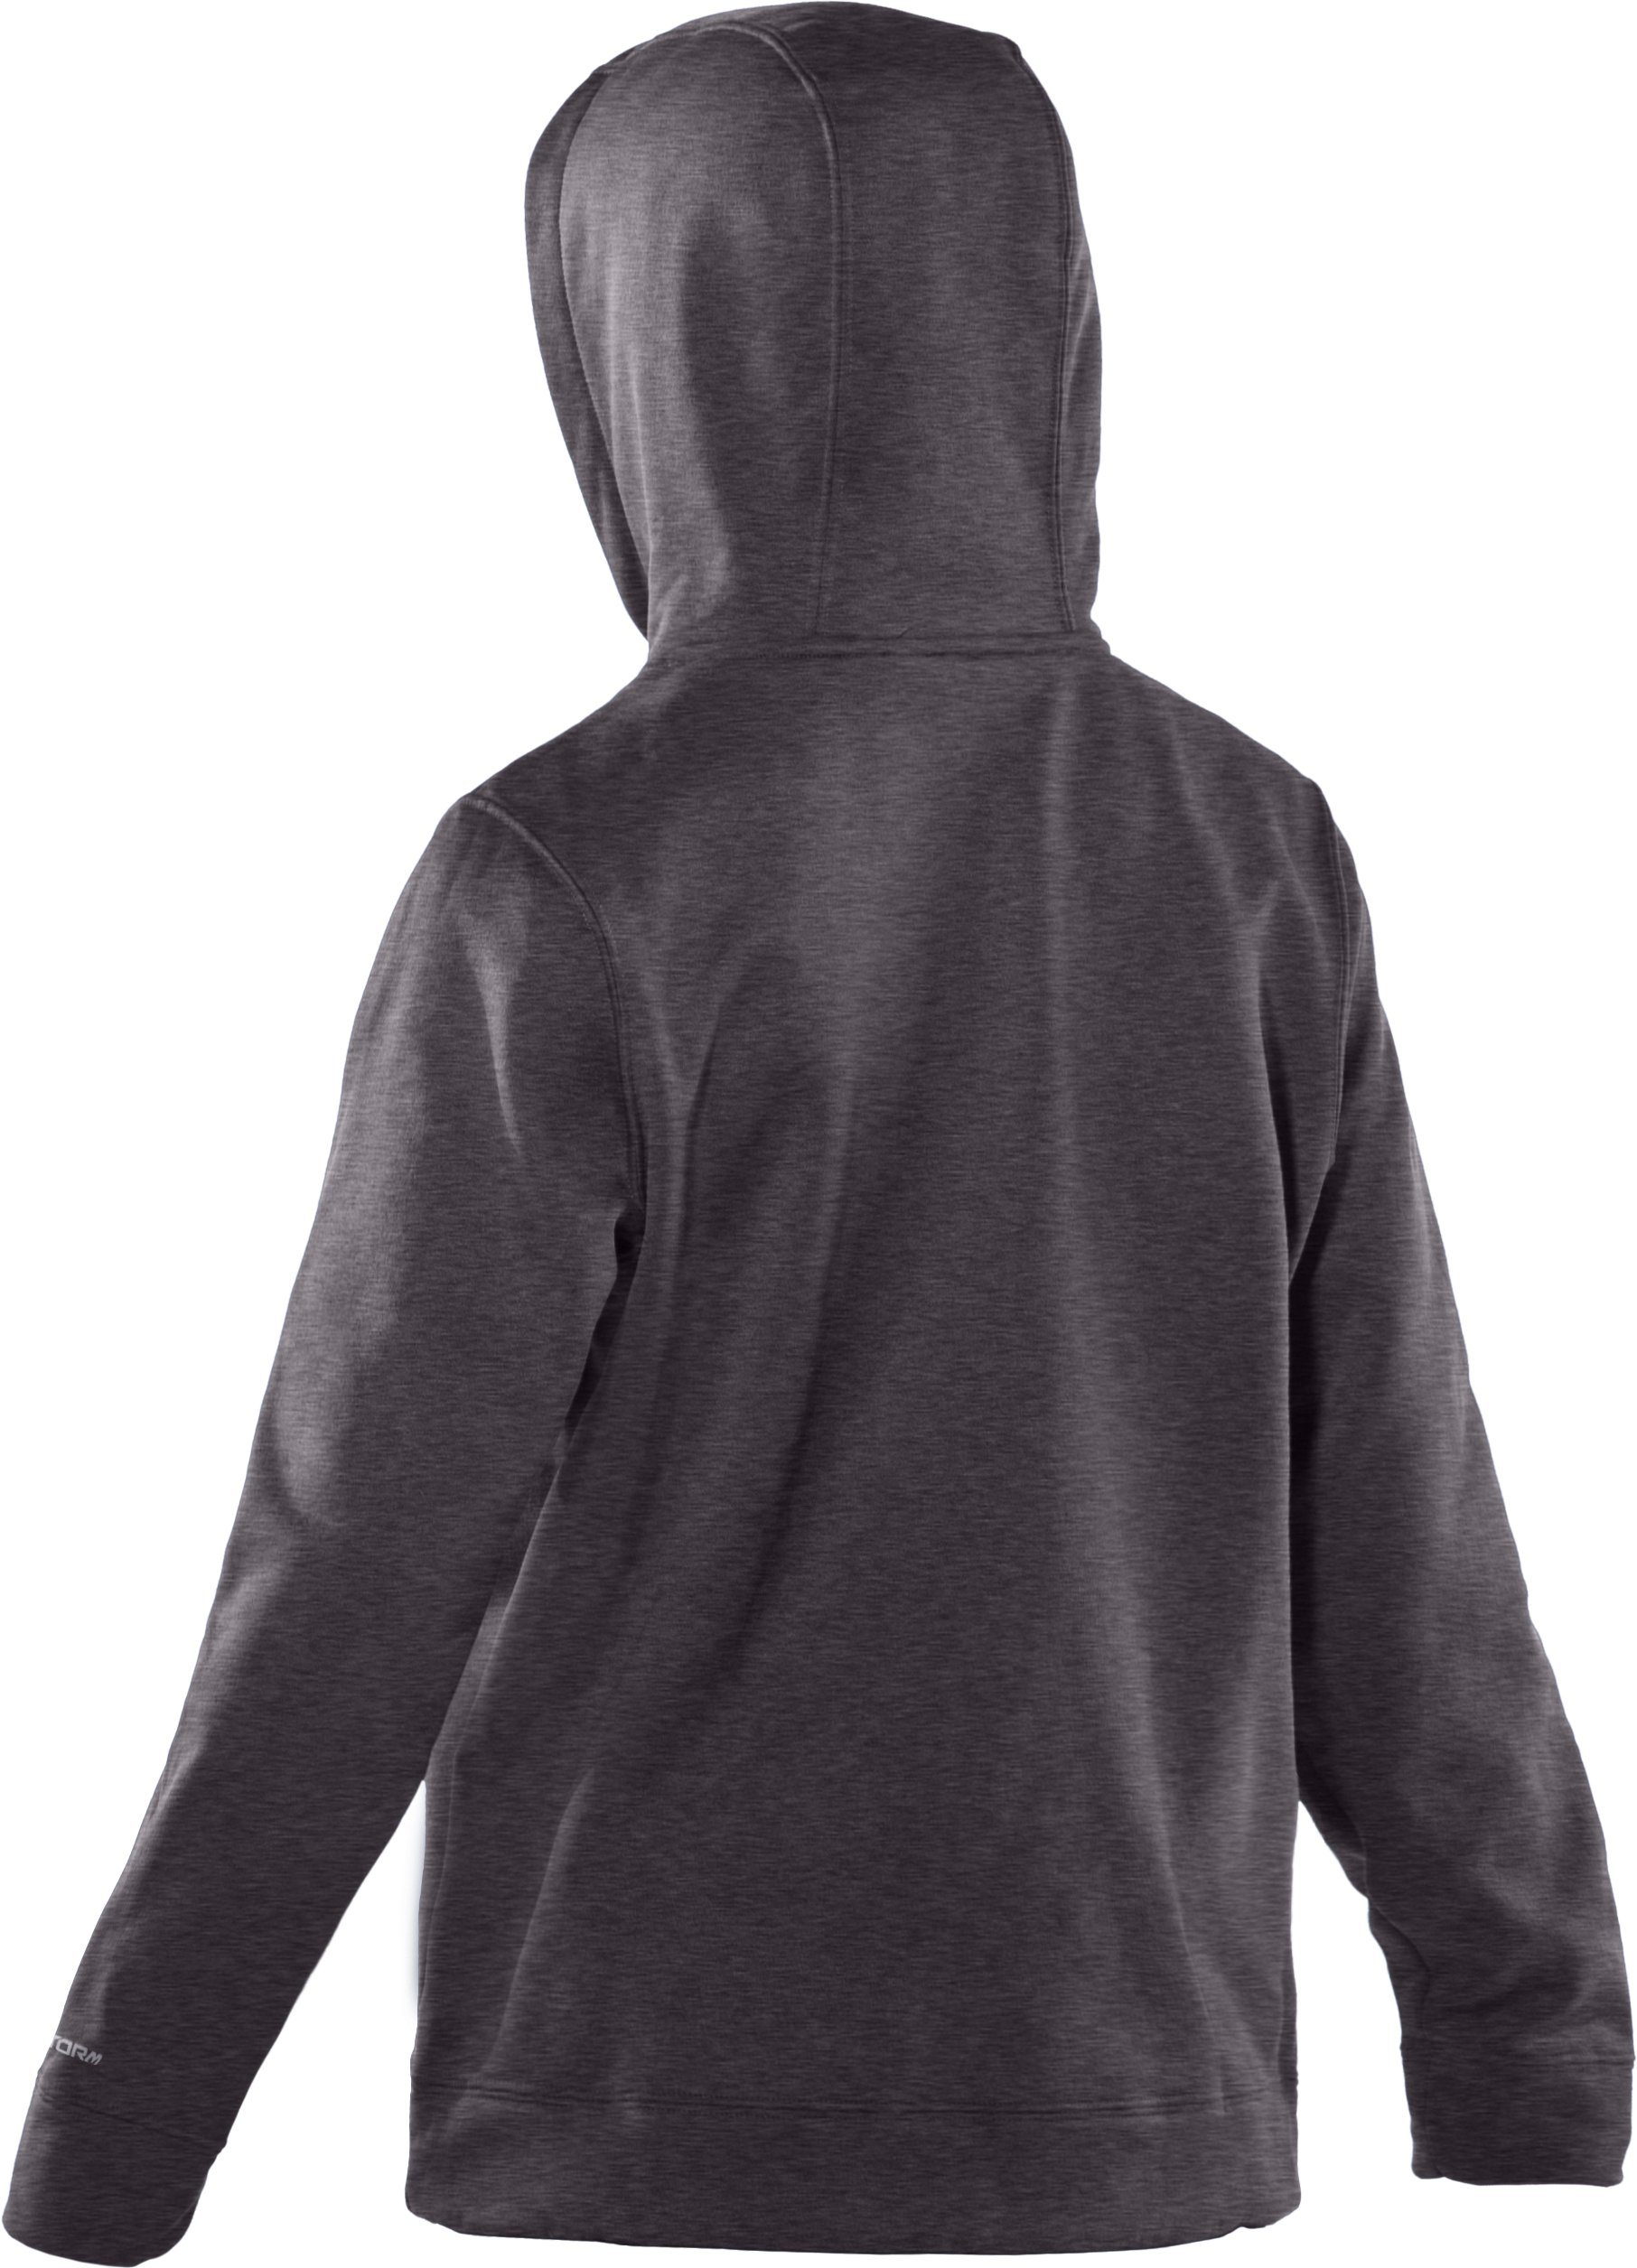 Boys' Armour® Fleece Storm Big Logo Pullover Hoodie, Carbon Heather, undefined